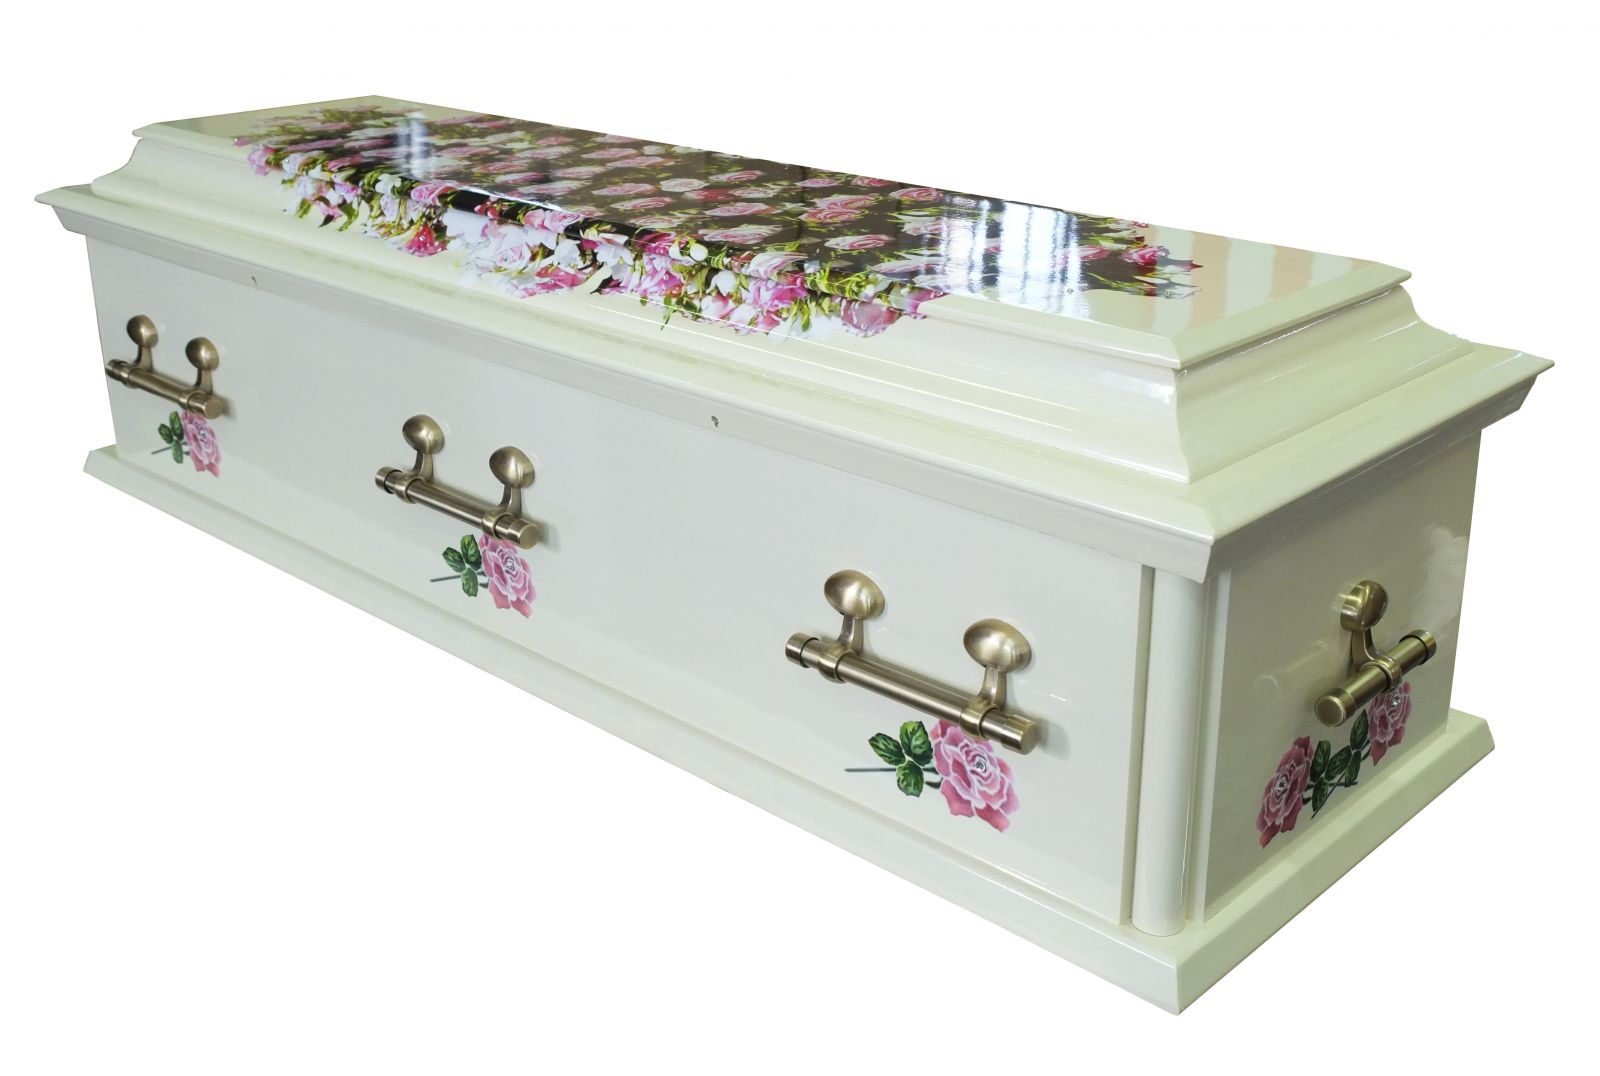 Coffin Designs American Caskets Personal Picture Coffins From Colourful Coffins